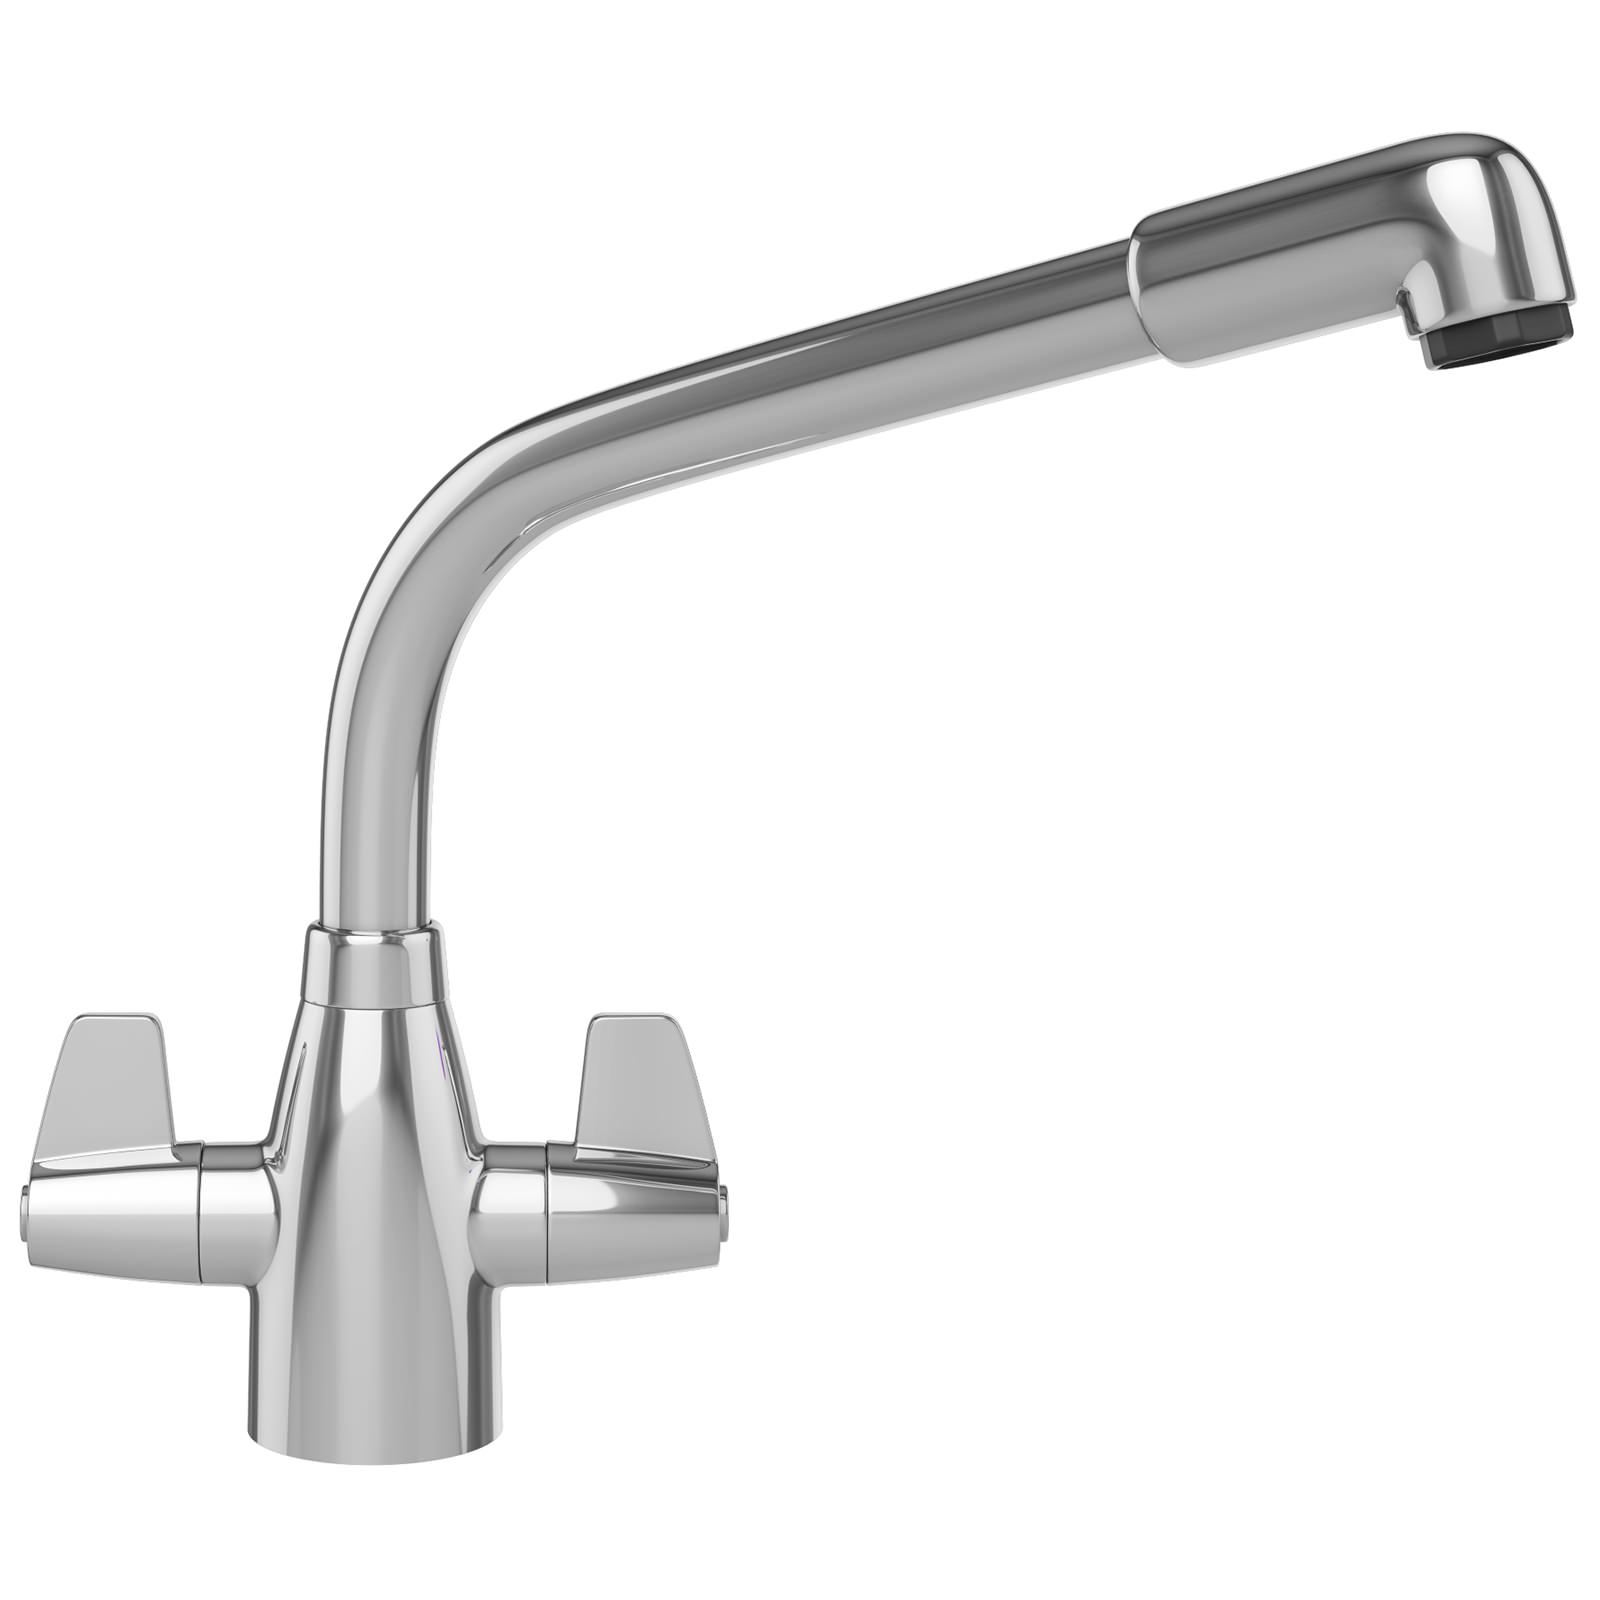 Franke Sinks And Taps : ... taps kitchen mixer taps franke davos kitchen sink mixer tap chrome